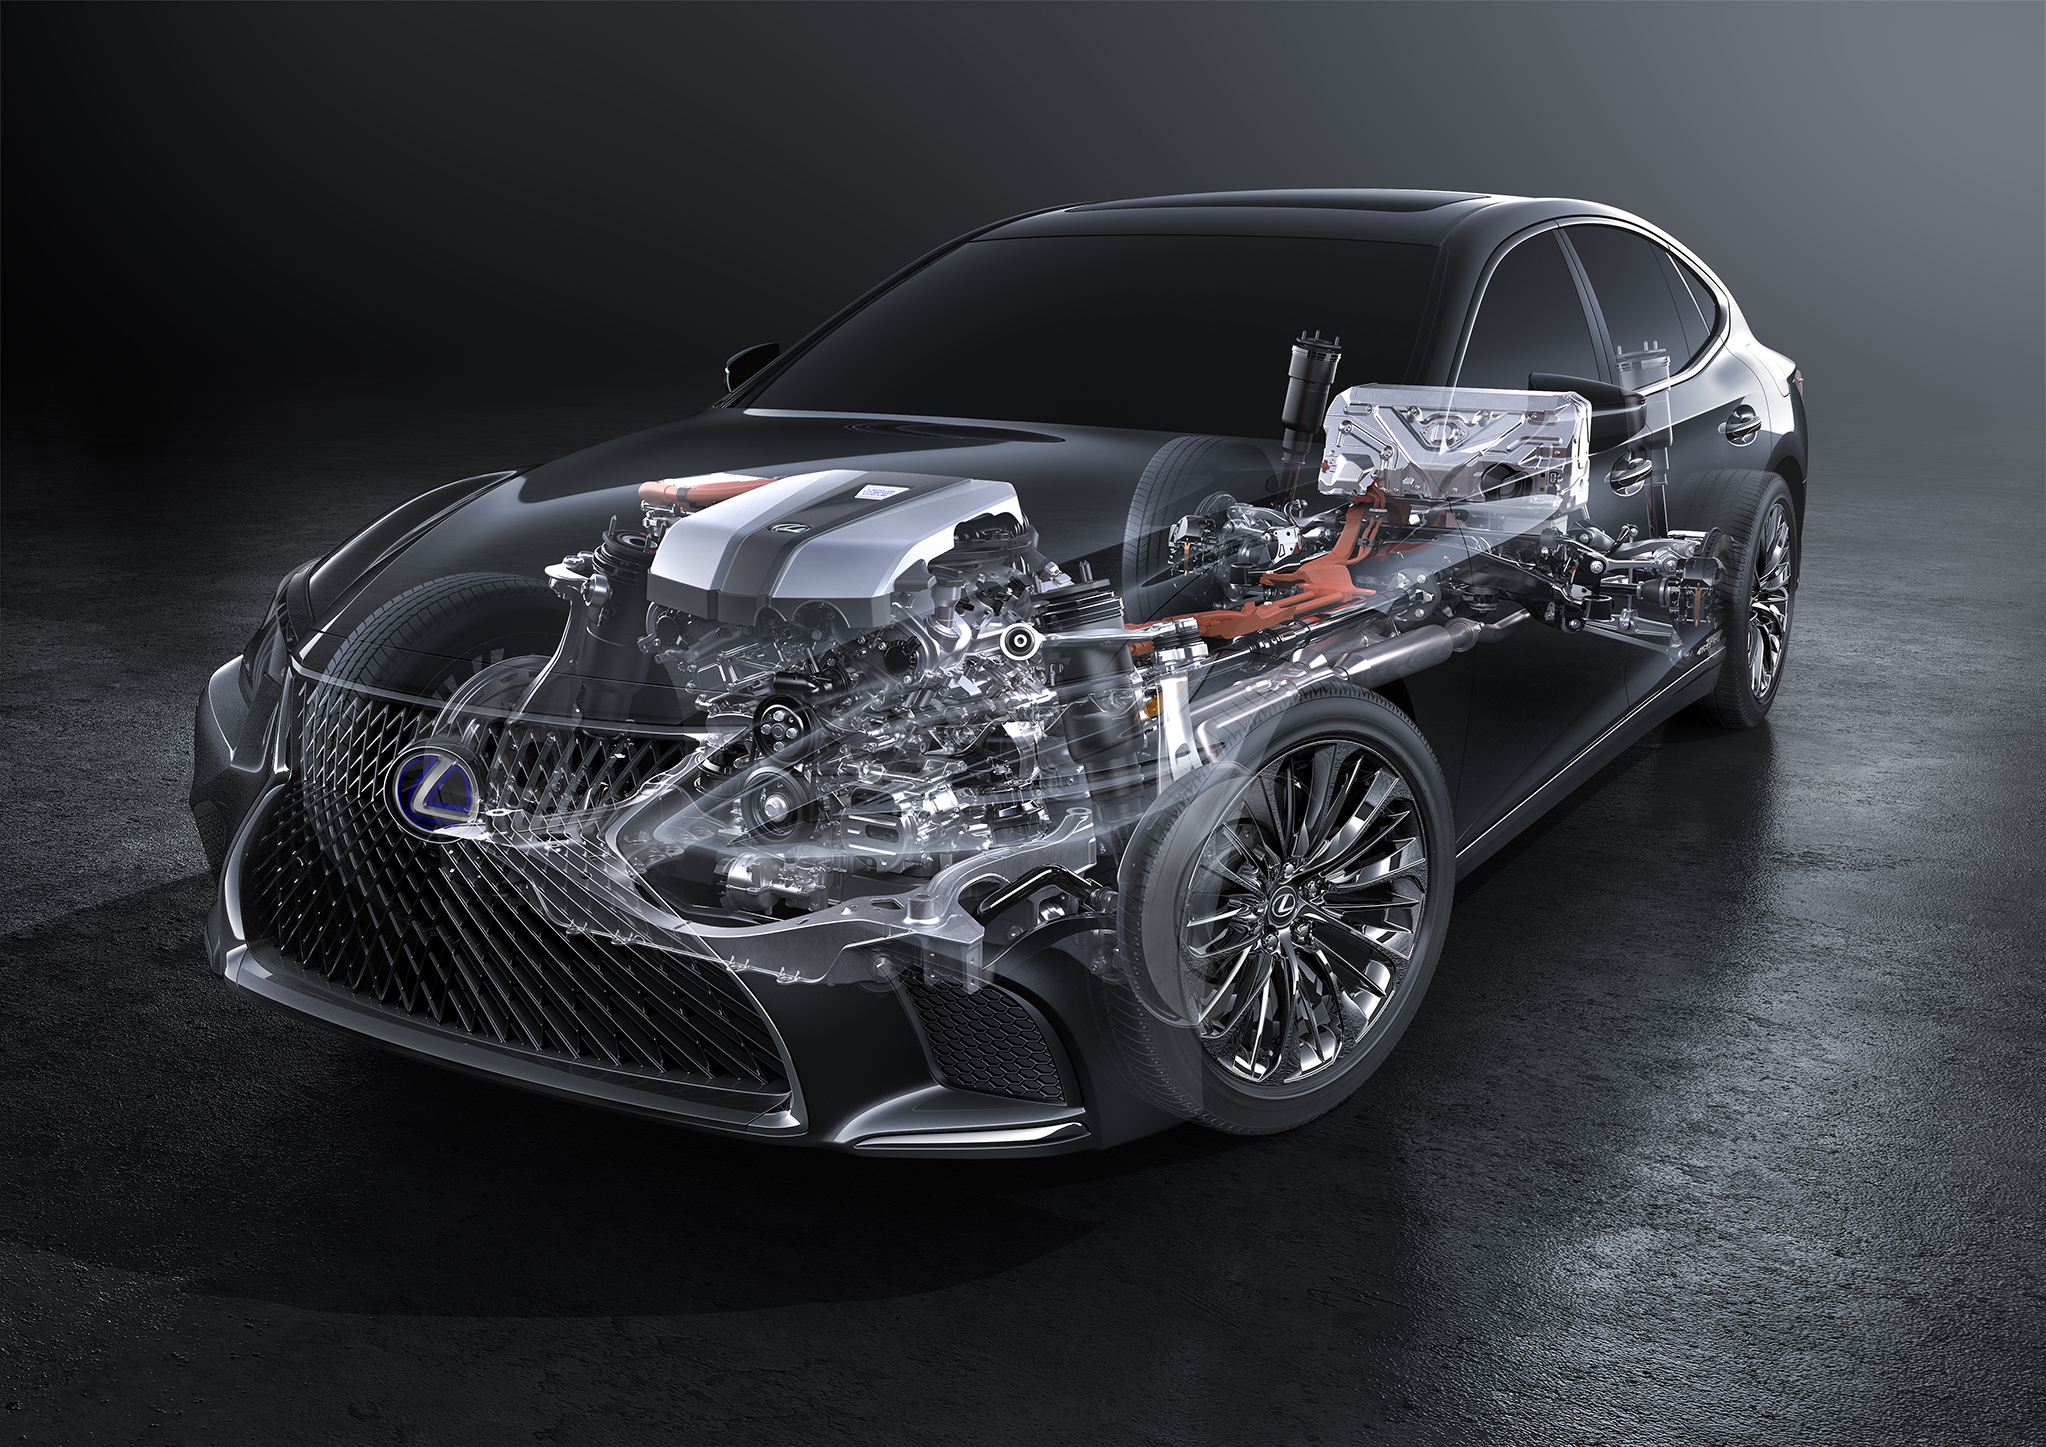 Lexus' multistage hybrid system to feature in the new LS 500h flagship sedan